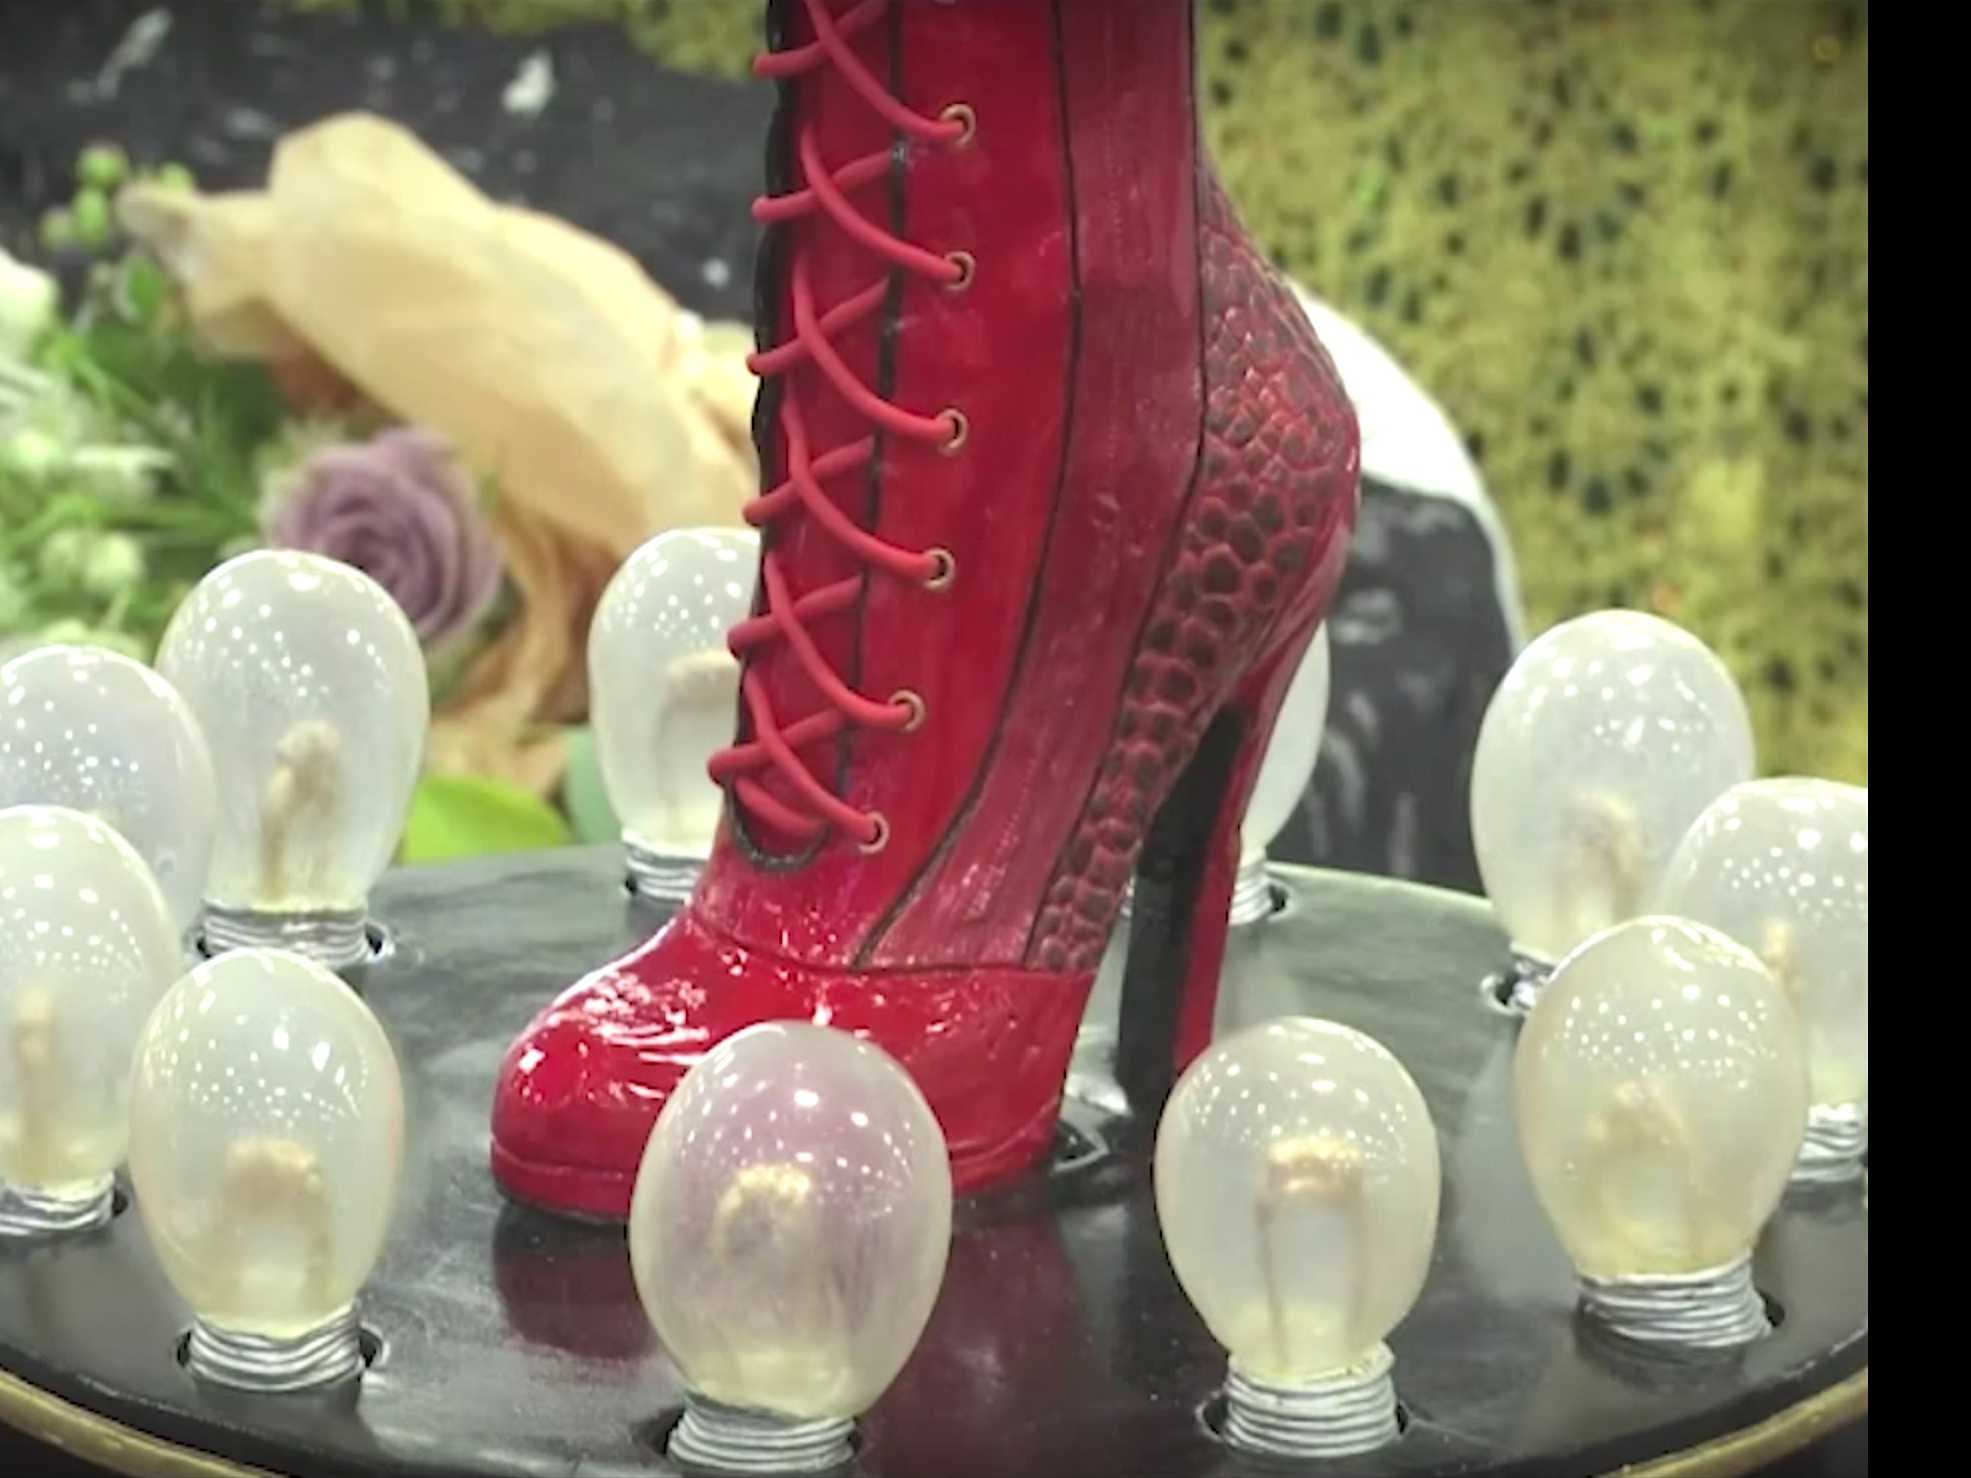 'Kinky Boots' Cake Wins Best in Show at NY Cake Show